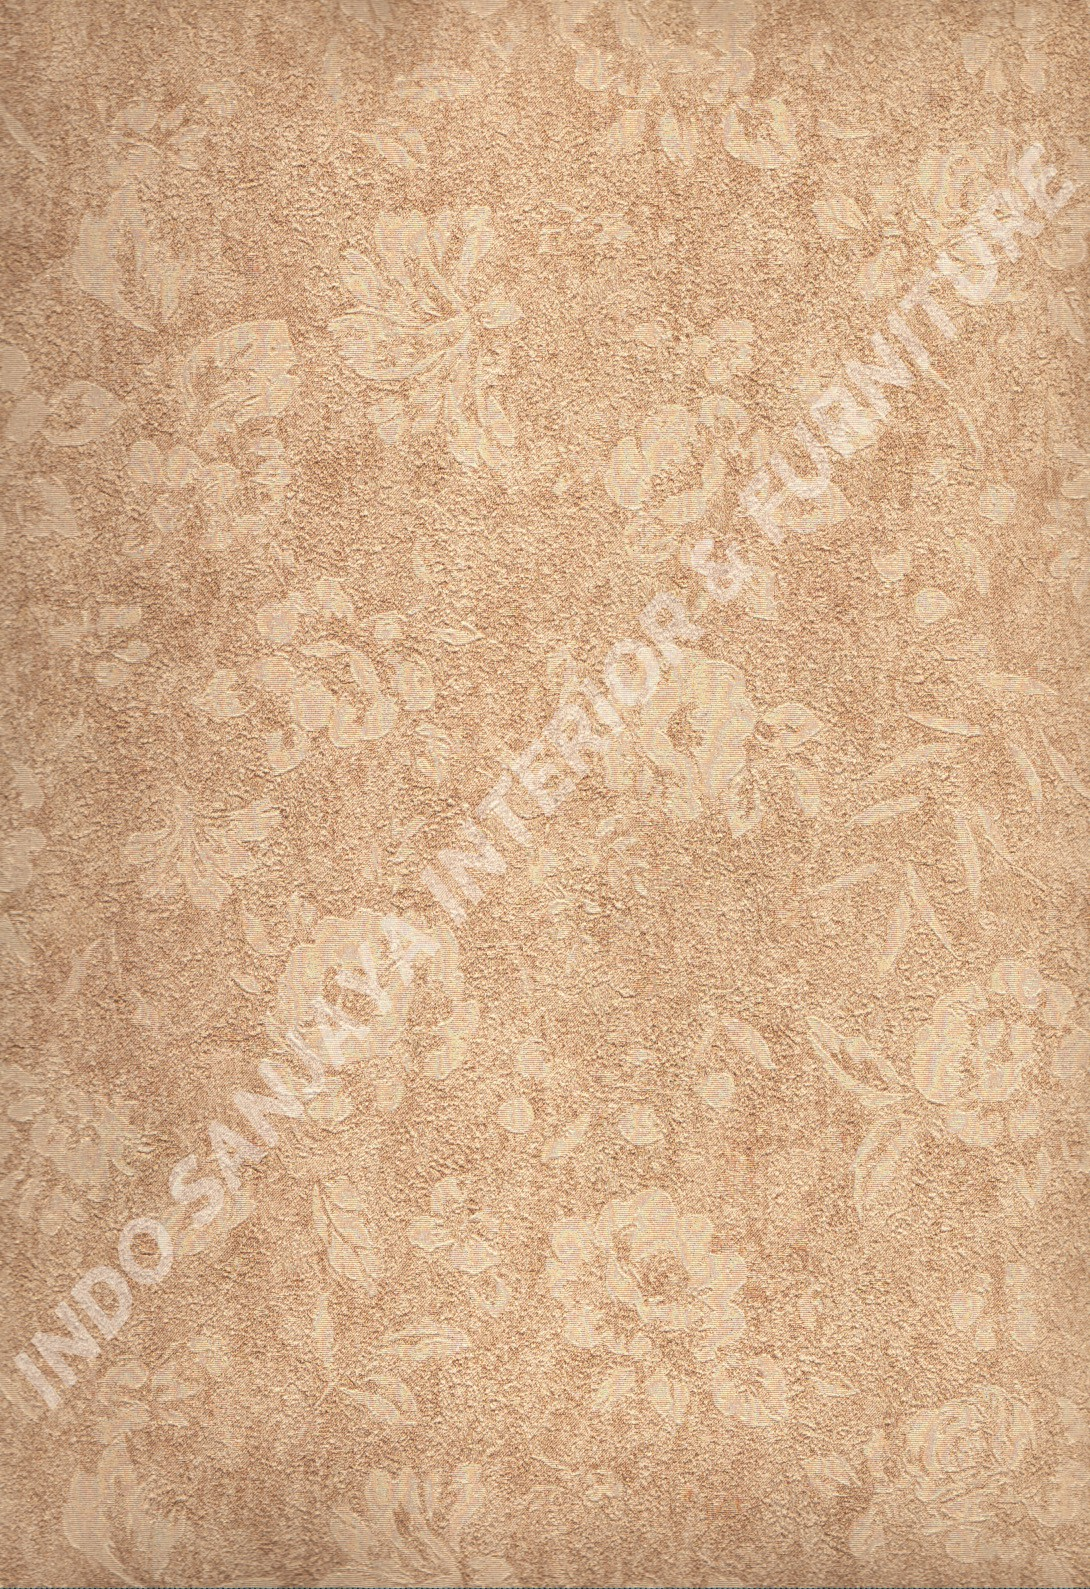 wallpaper   Wallpaper Bunga 51015-5:51015-5 corak  warna